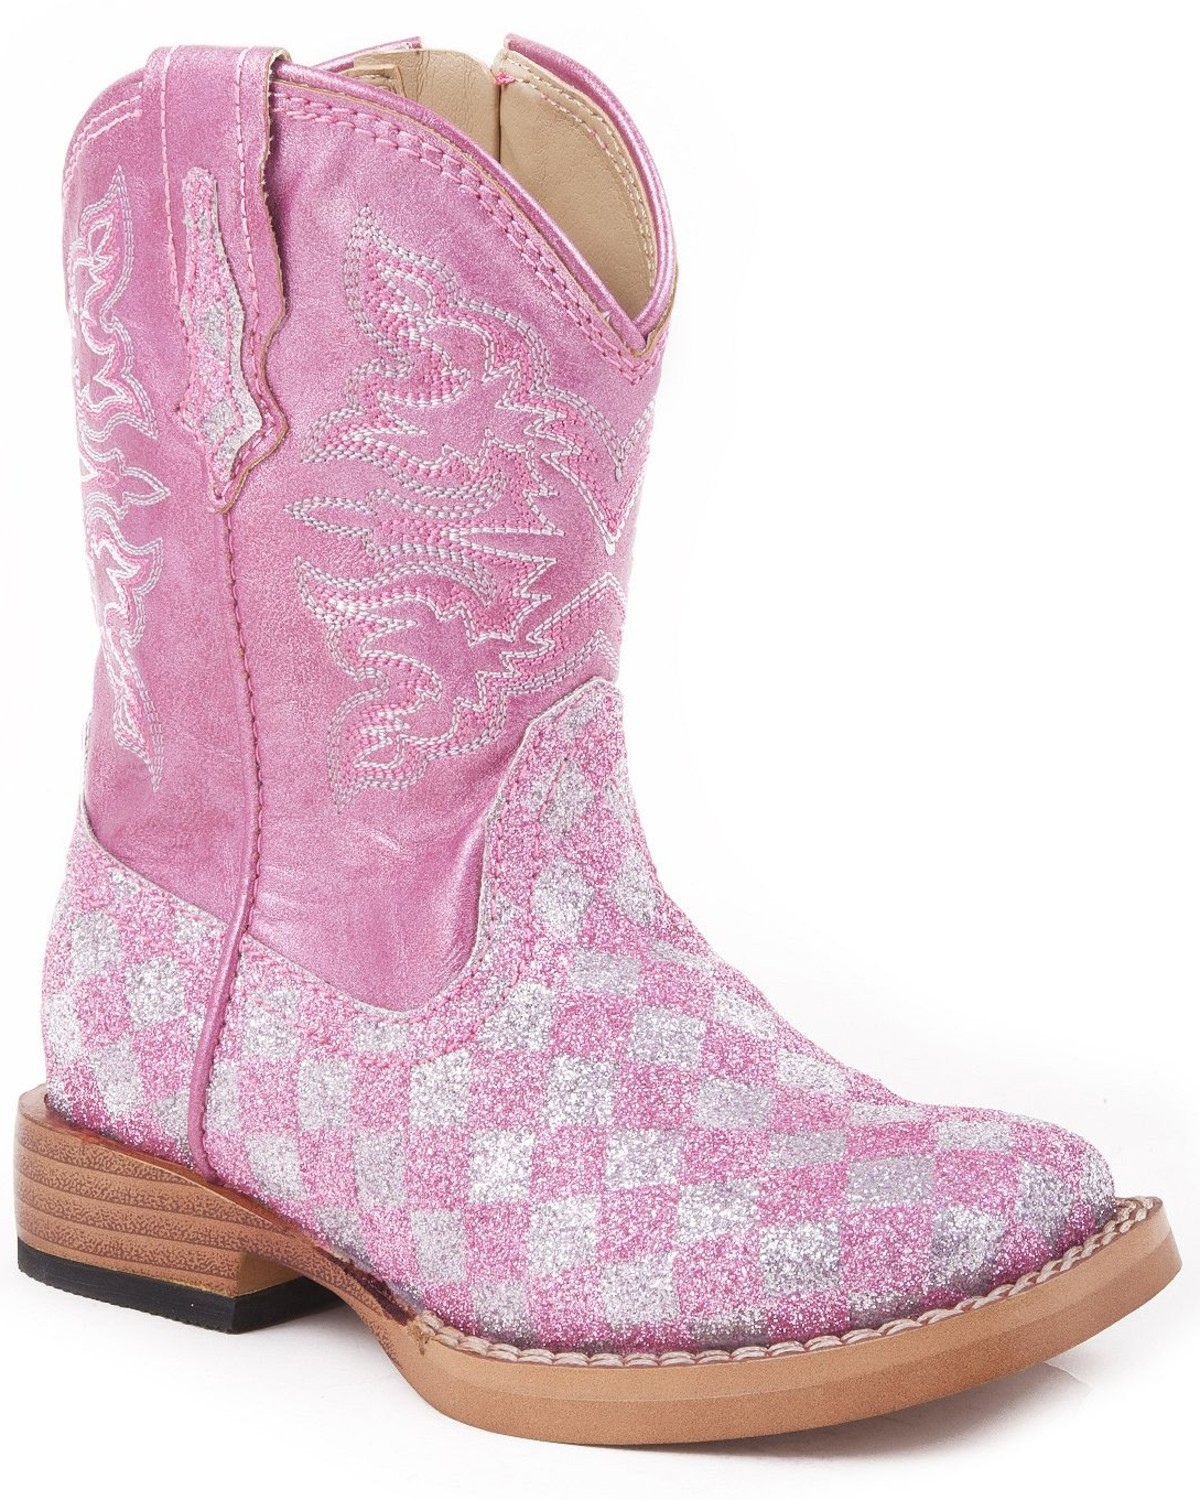 Kids' Boots & Shoes - Toddler Sizes 5 to 8 - Sheplers